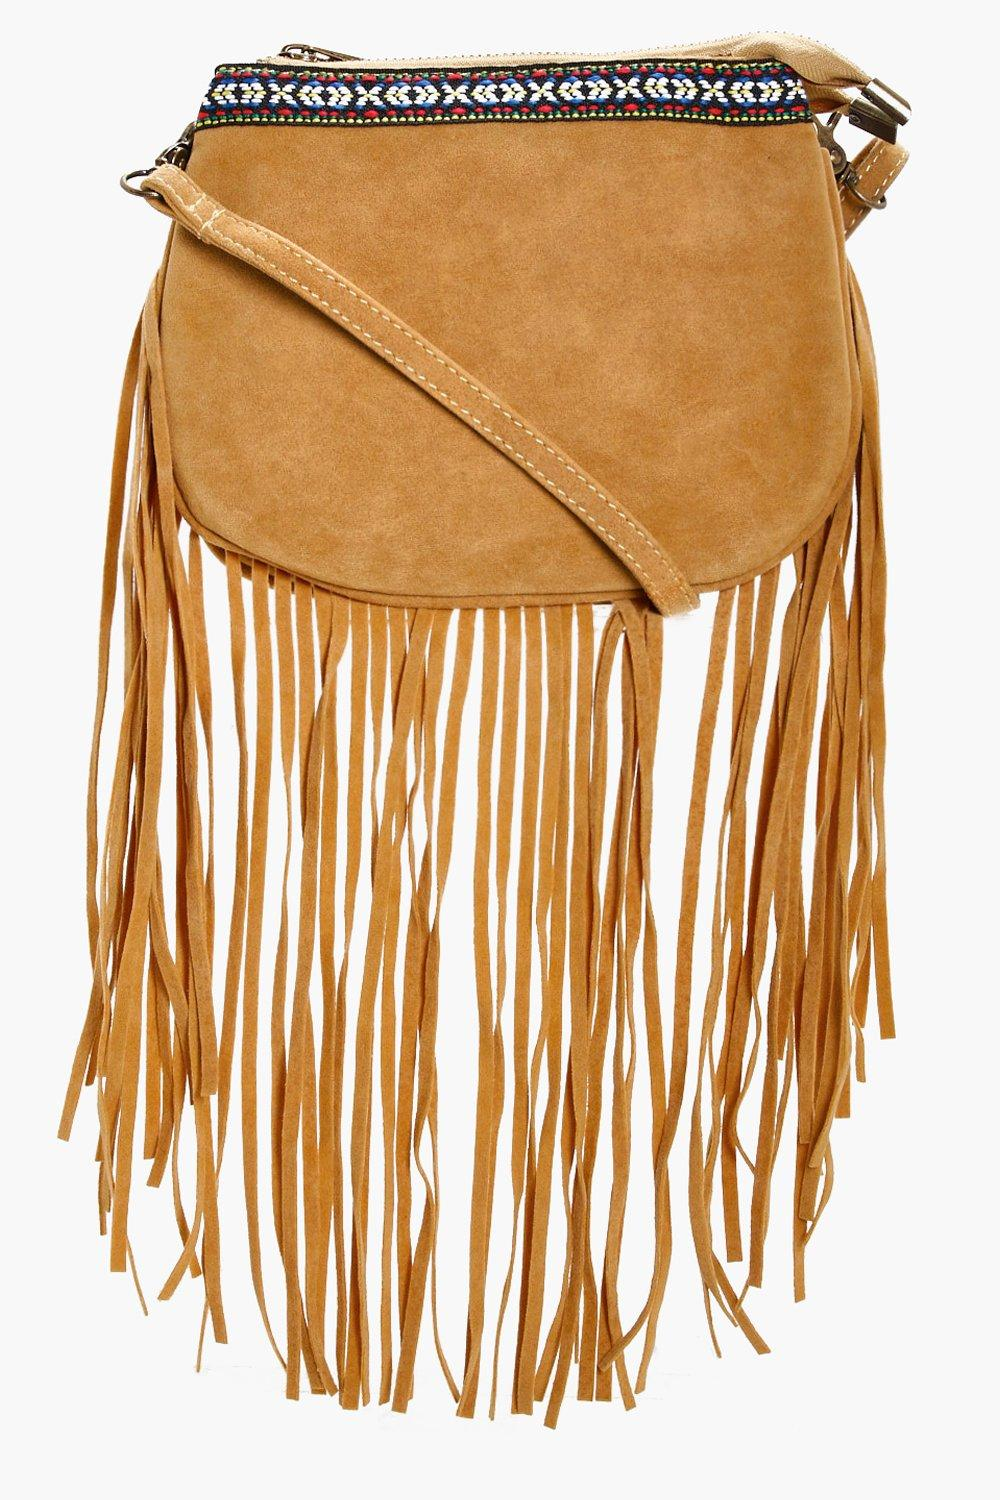 Aztec Trim Fringe Cross Body - mustard - Lianne Az